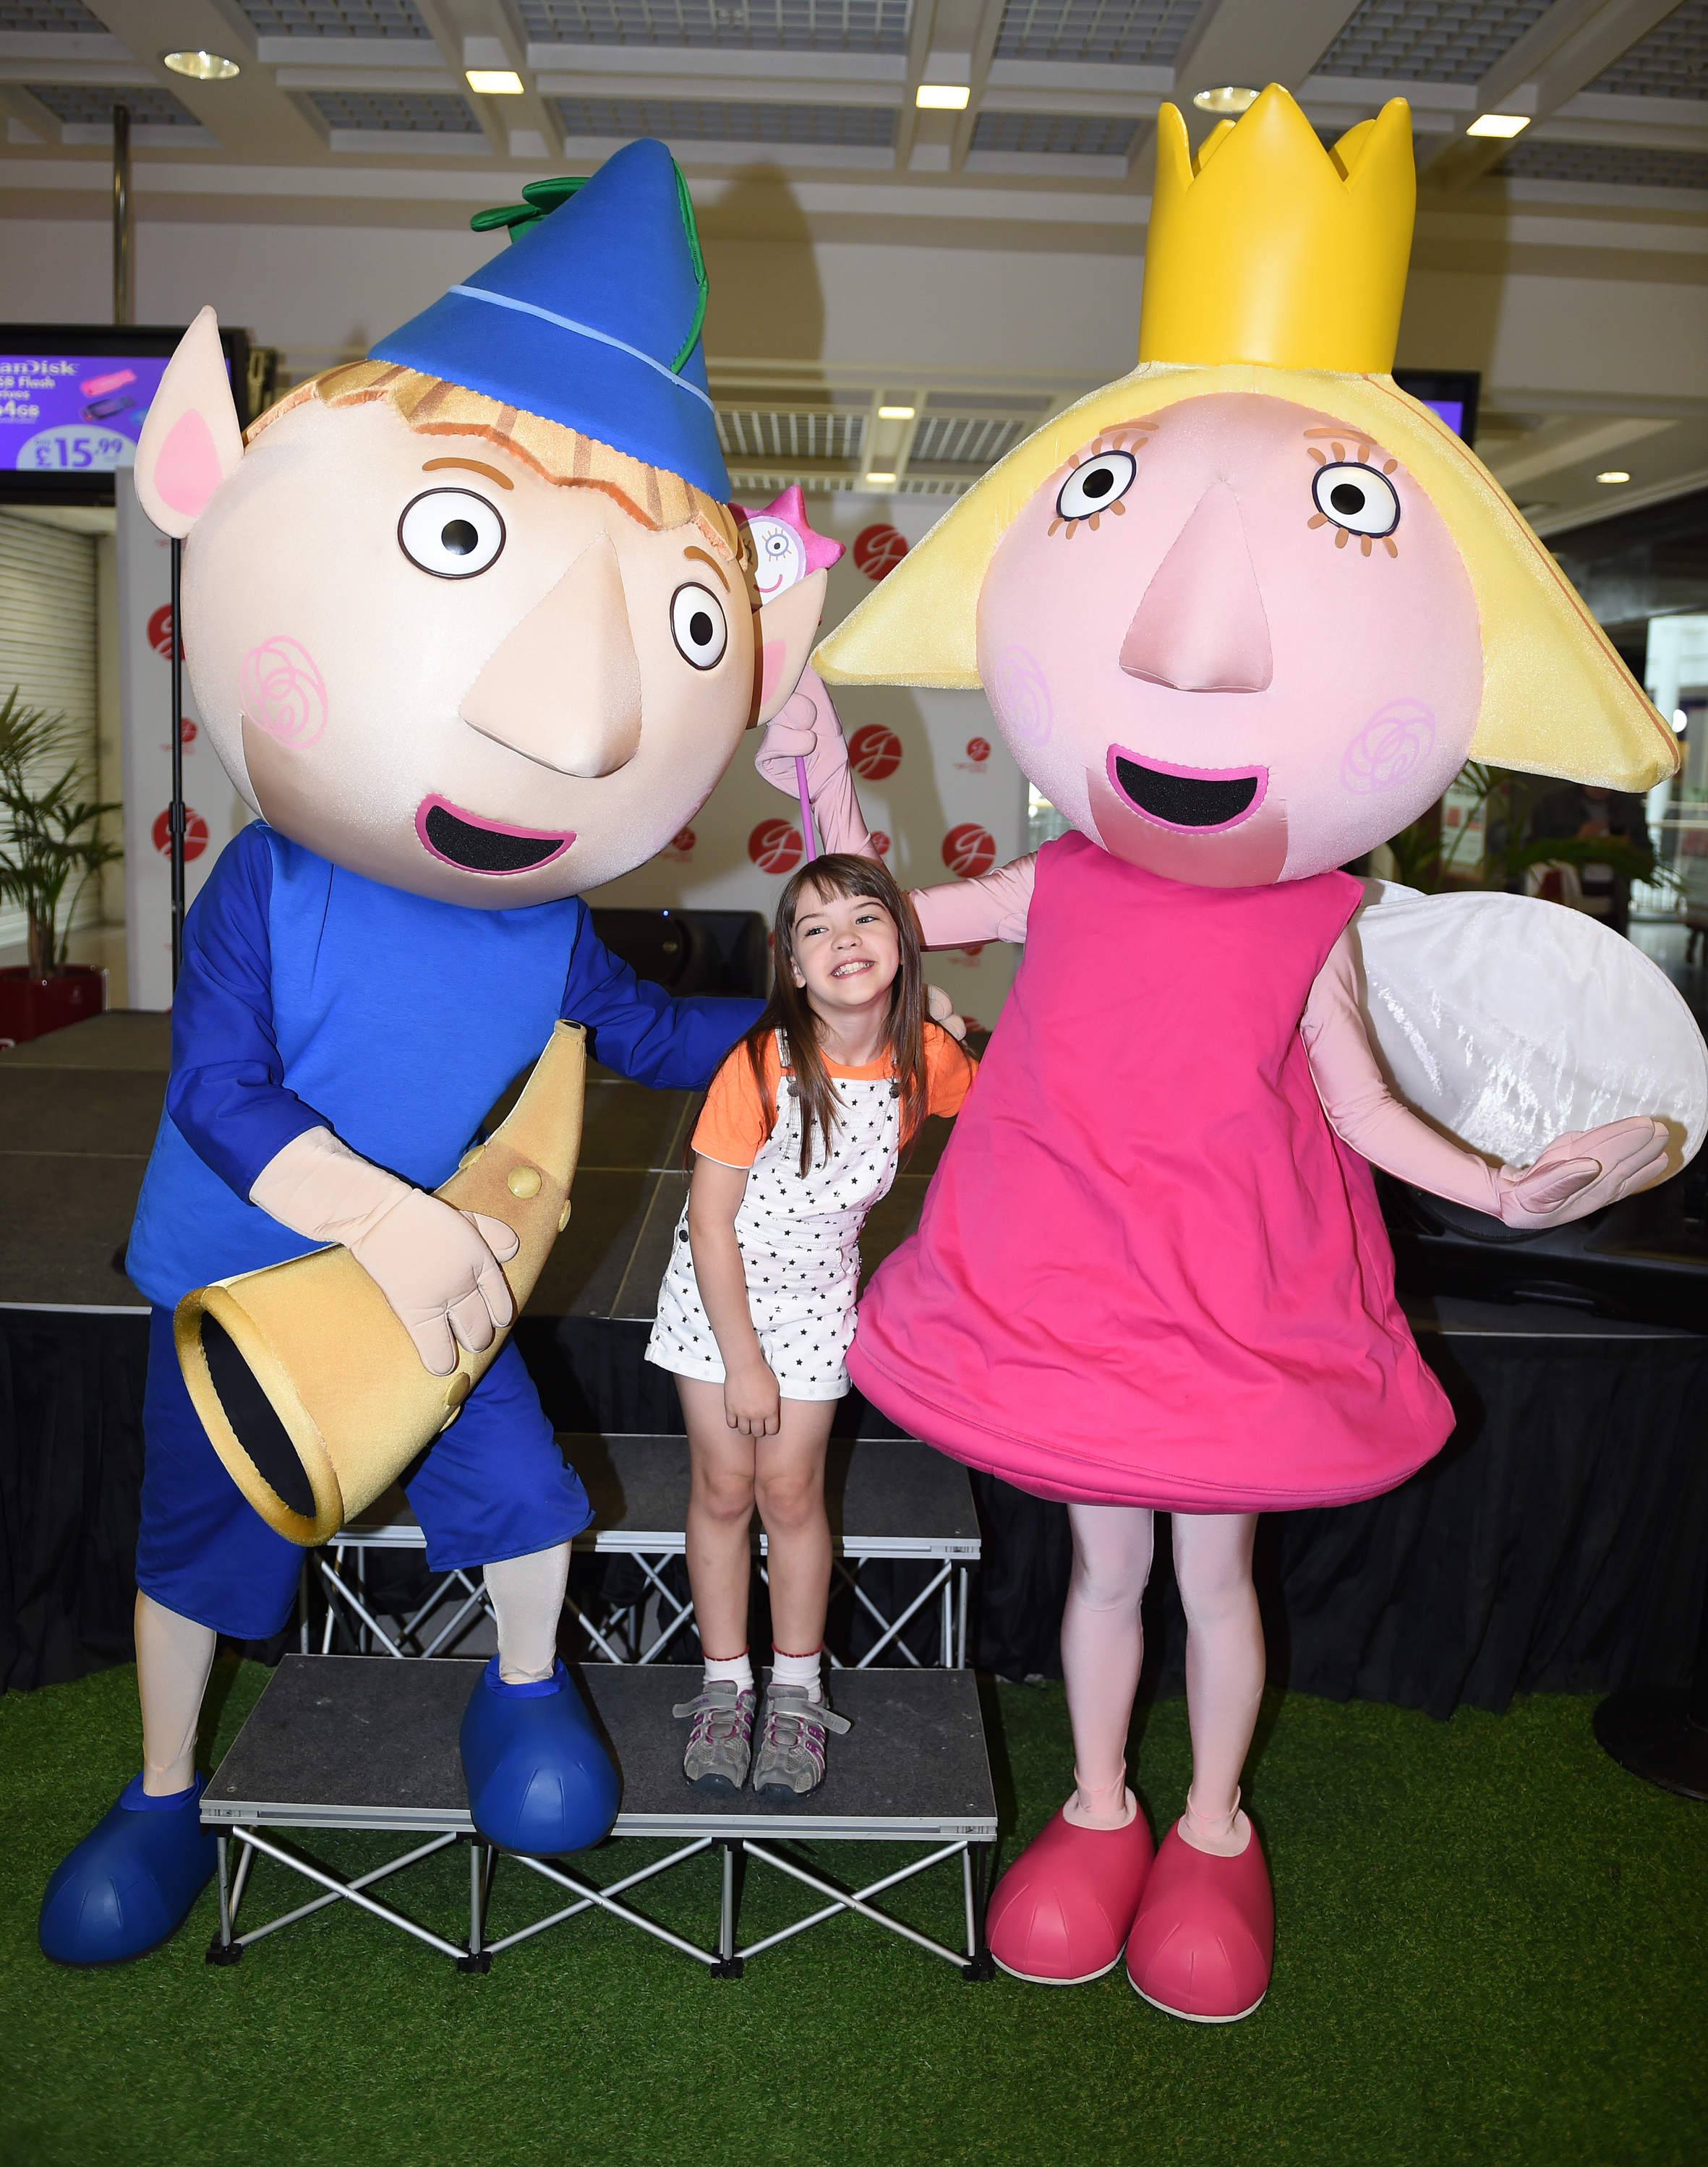 Summer Latimer aged 8 is delighted as she meets Ben and Holly.